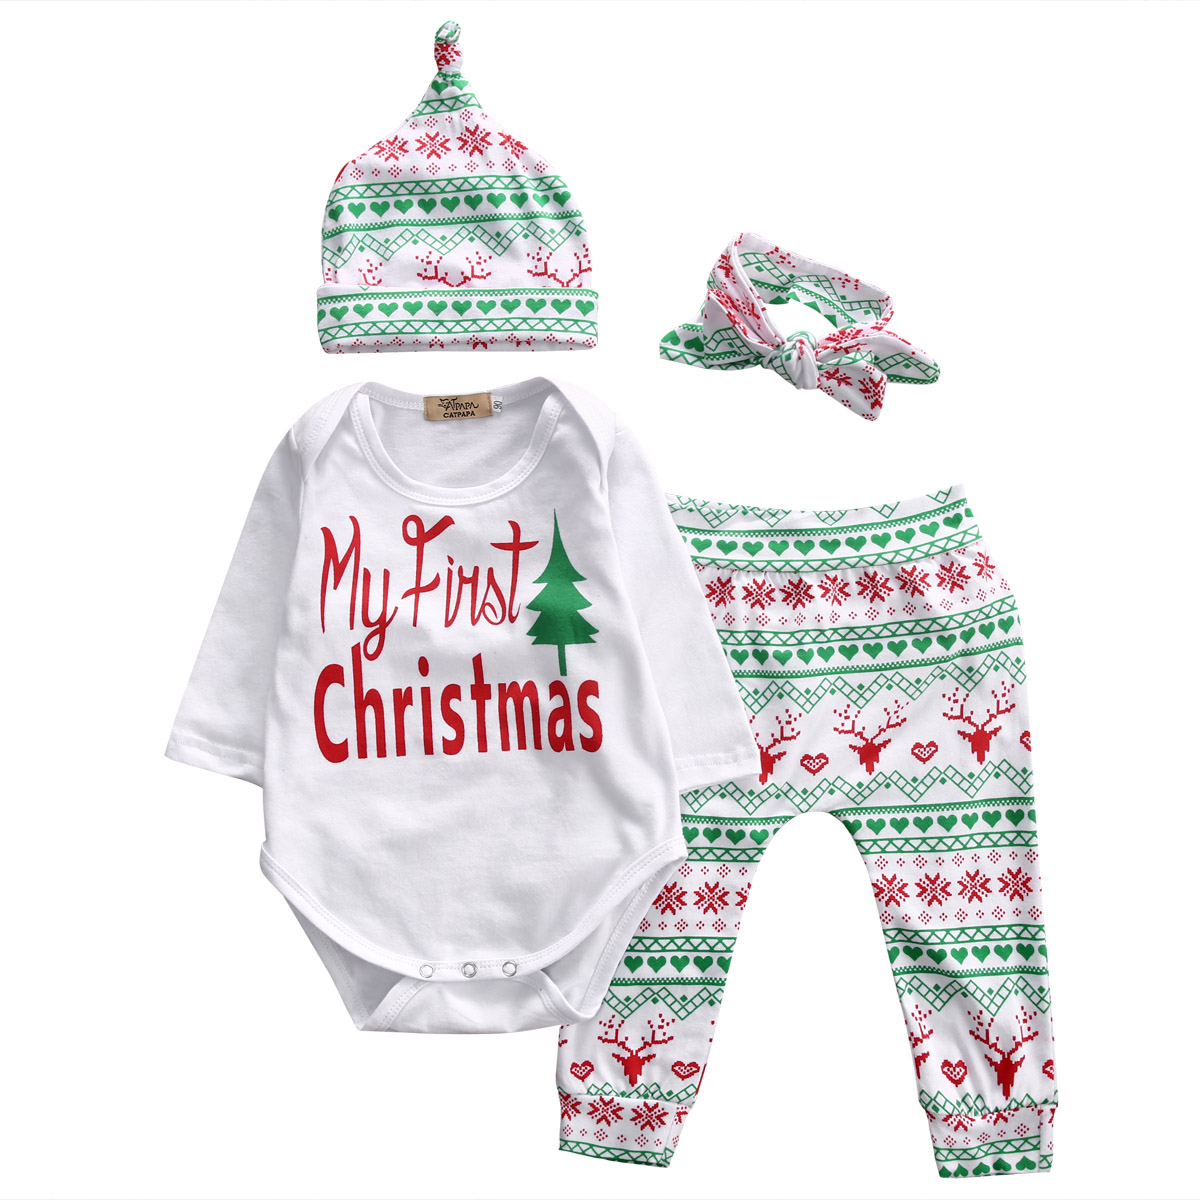 2016 Xmas Baby Girls Boys Christmas Clothes Long Sleeve